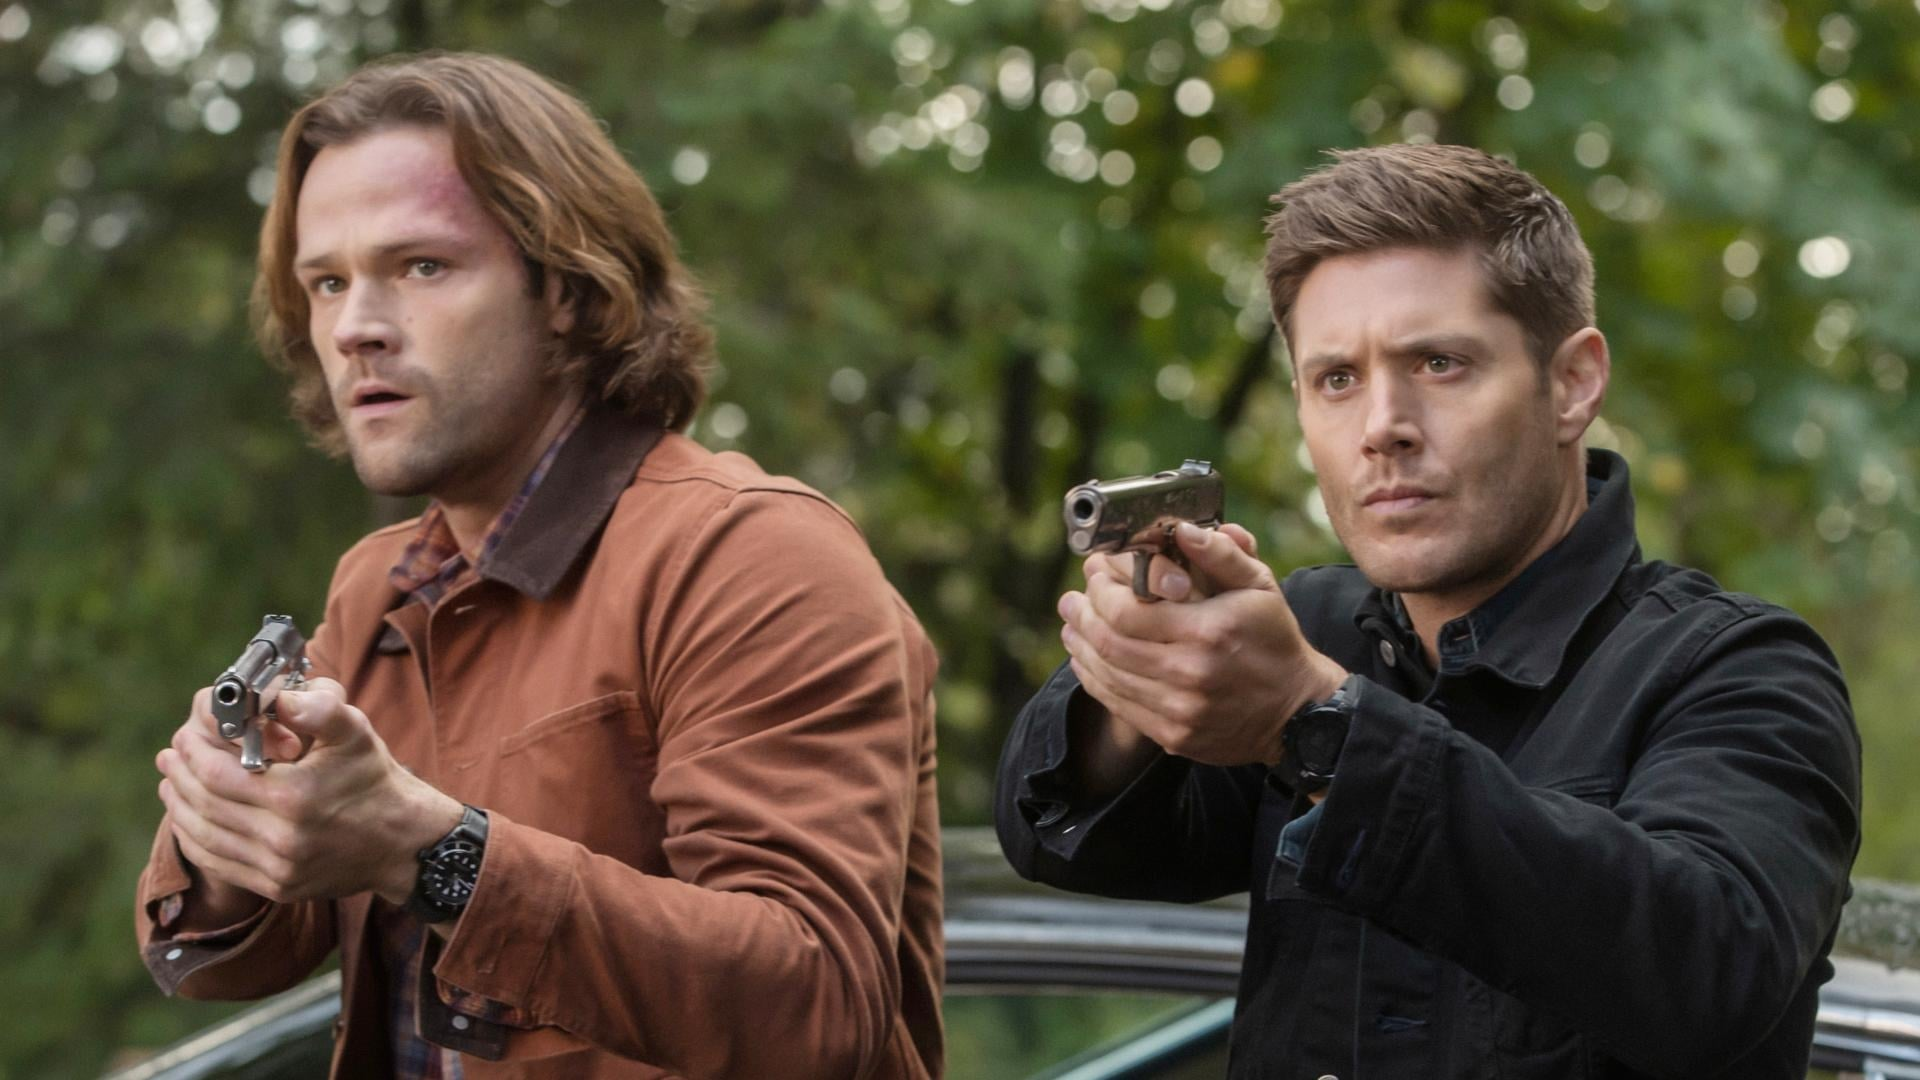 Supernatural - Season 13 Episode 8 : The Scorpion and the Frog